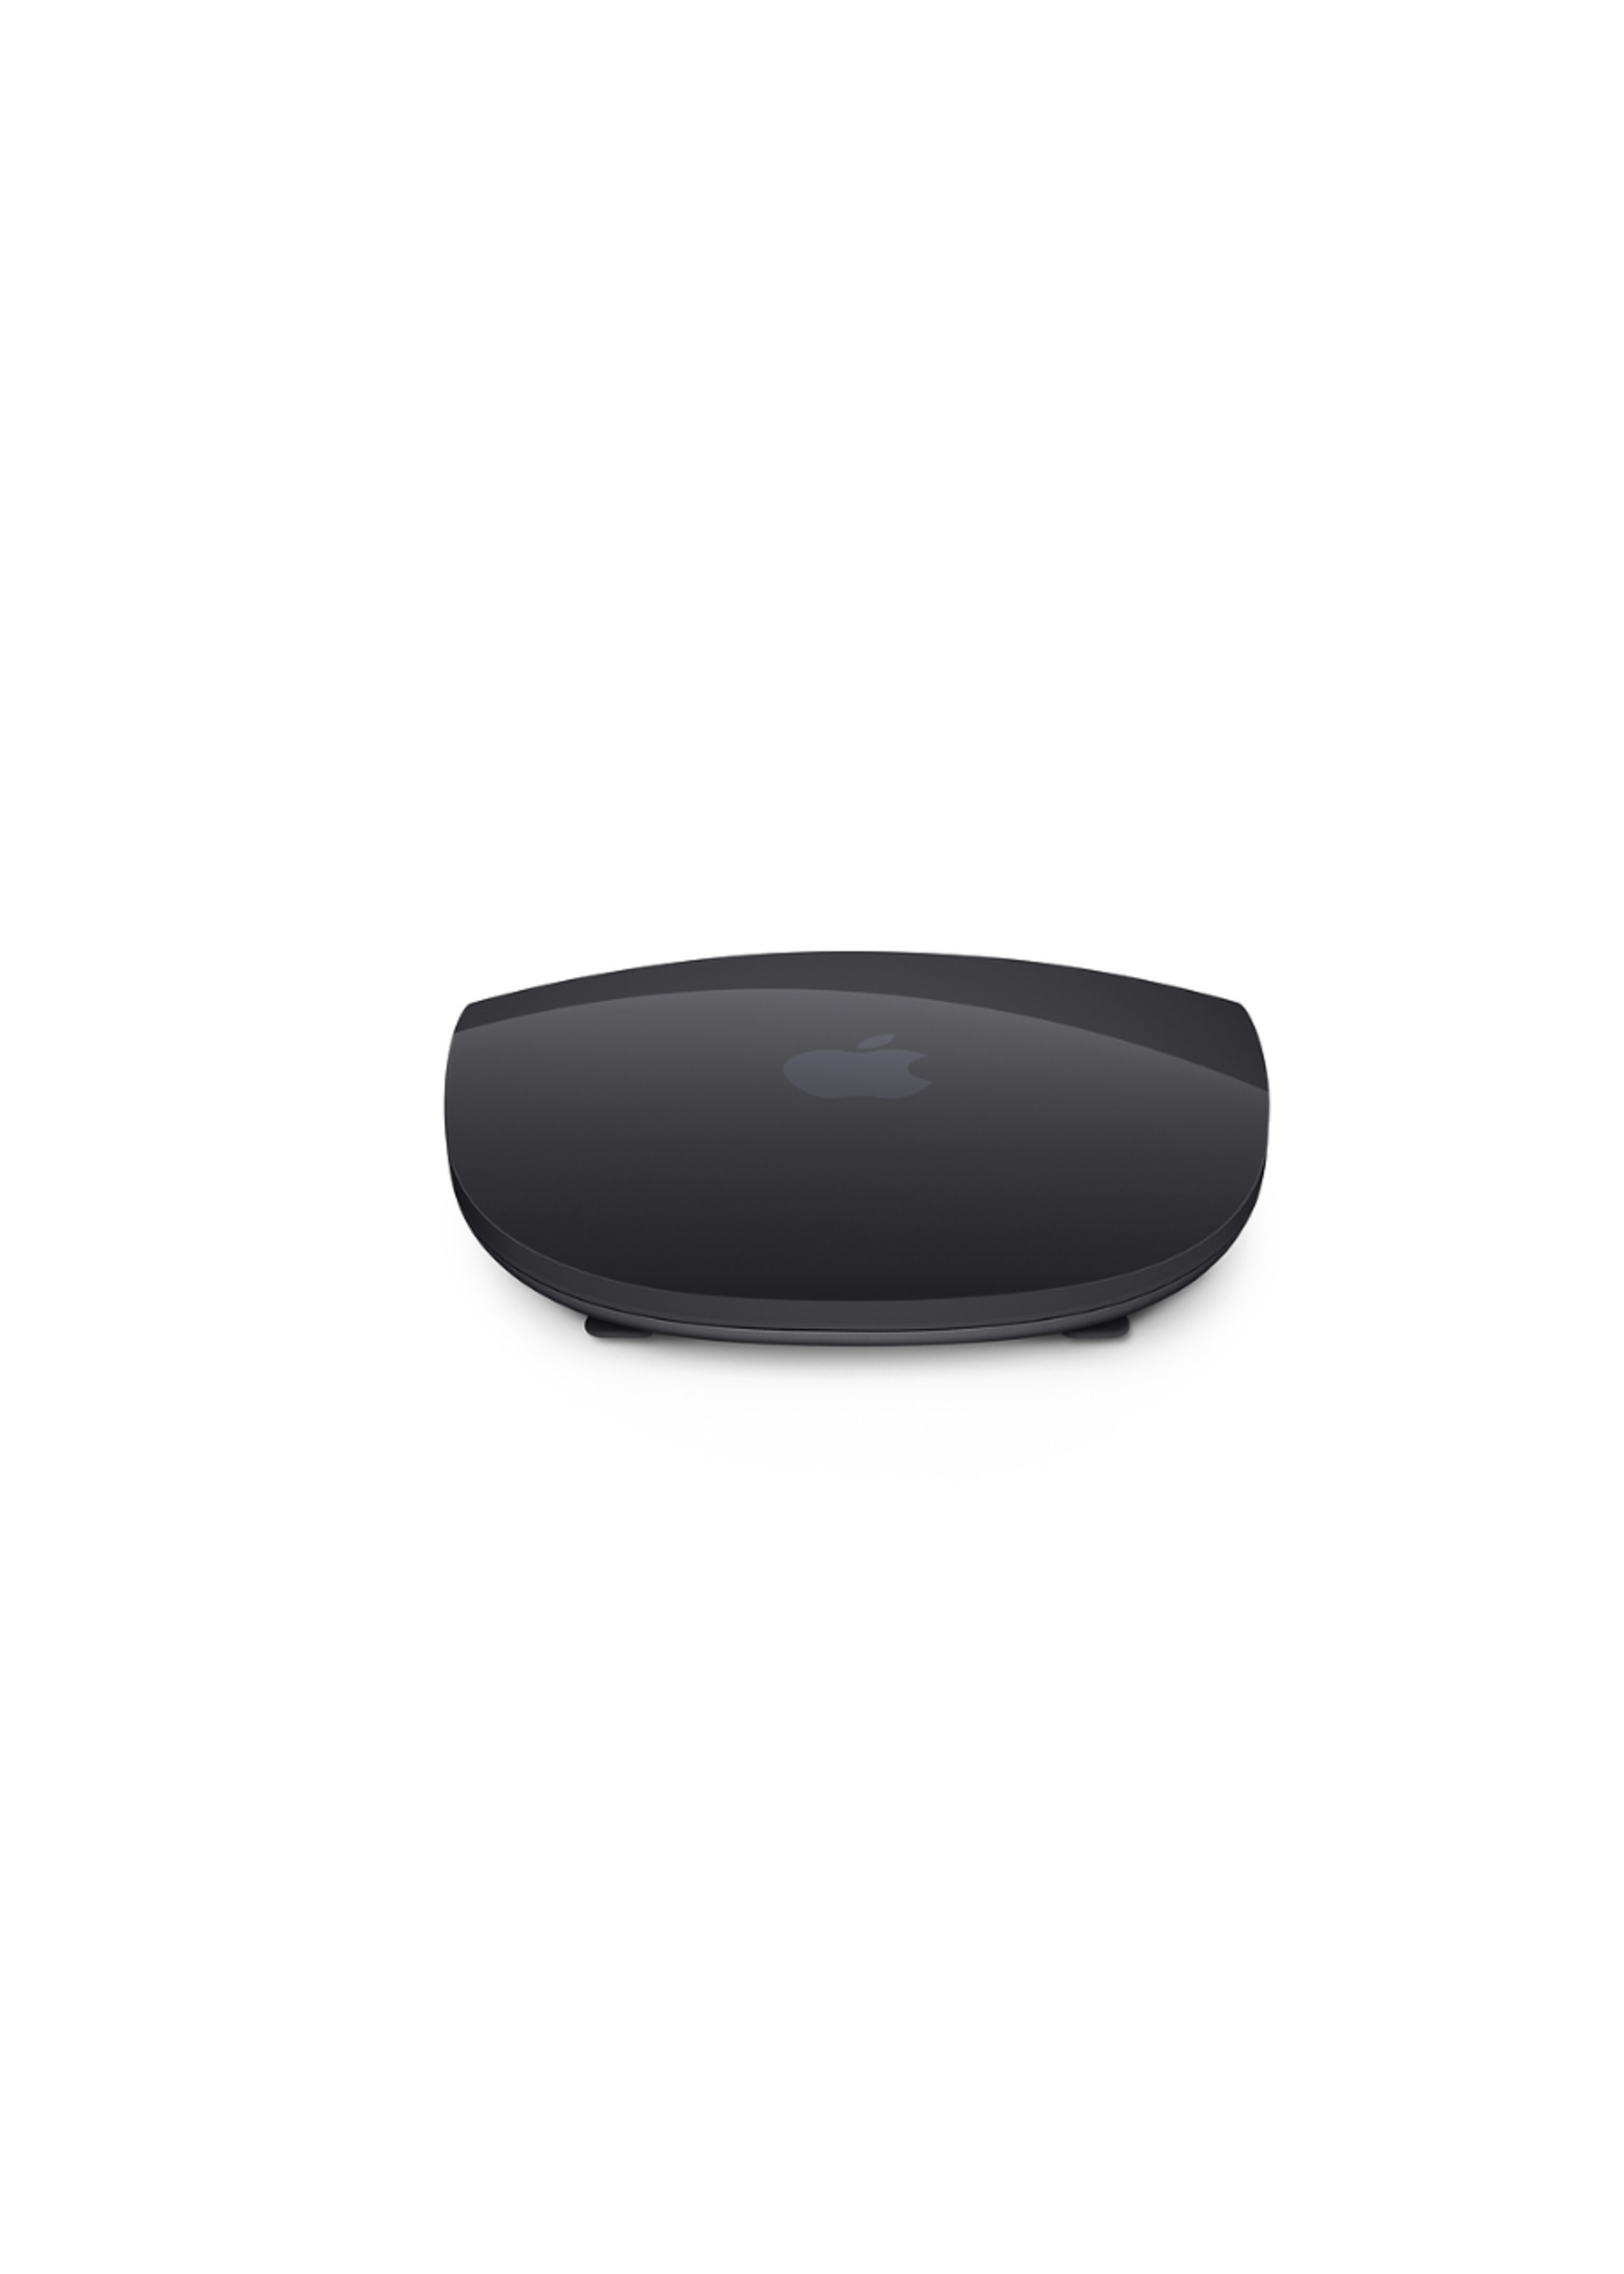 Apple Magic Mouse - Space Gray